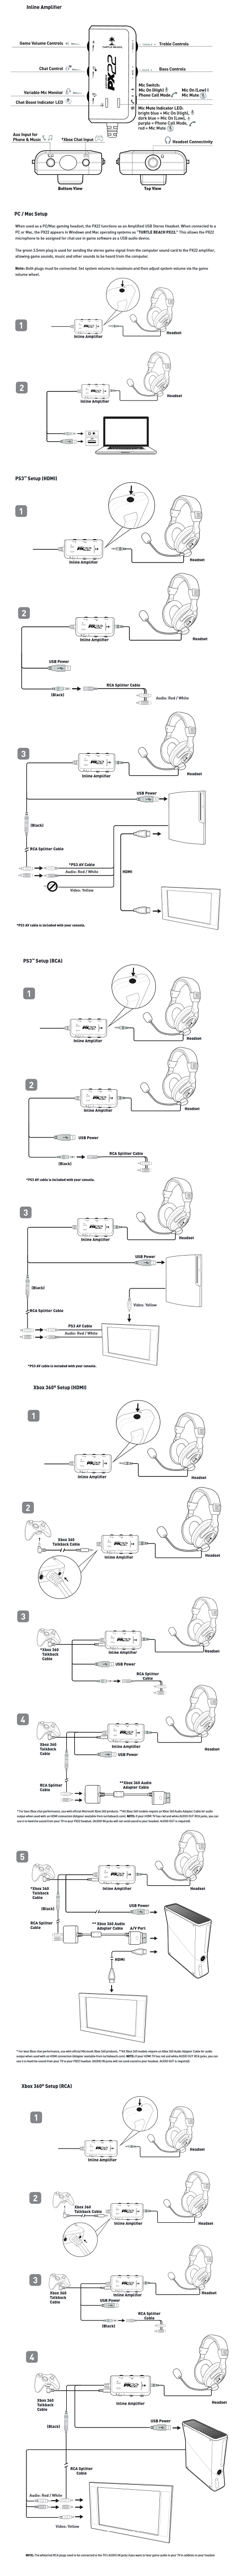 PX22_SETUP turtle beach px22 wiring diagram how to rewire turtle beach Ear Force PX21 at sewacar.co